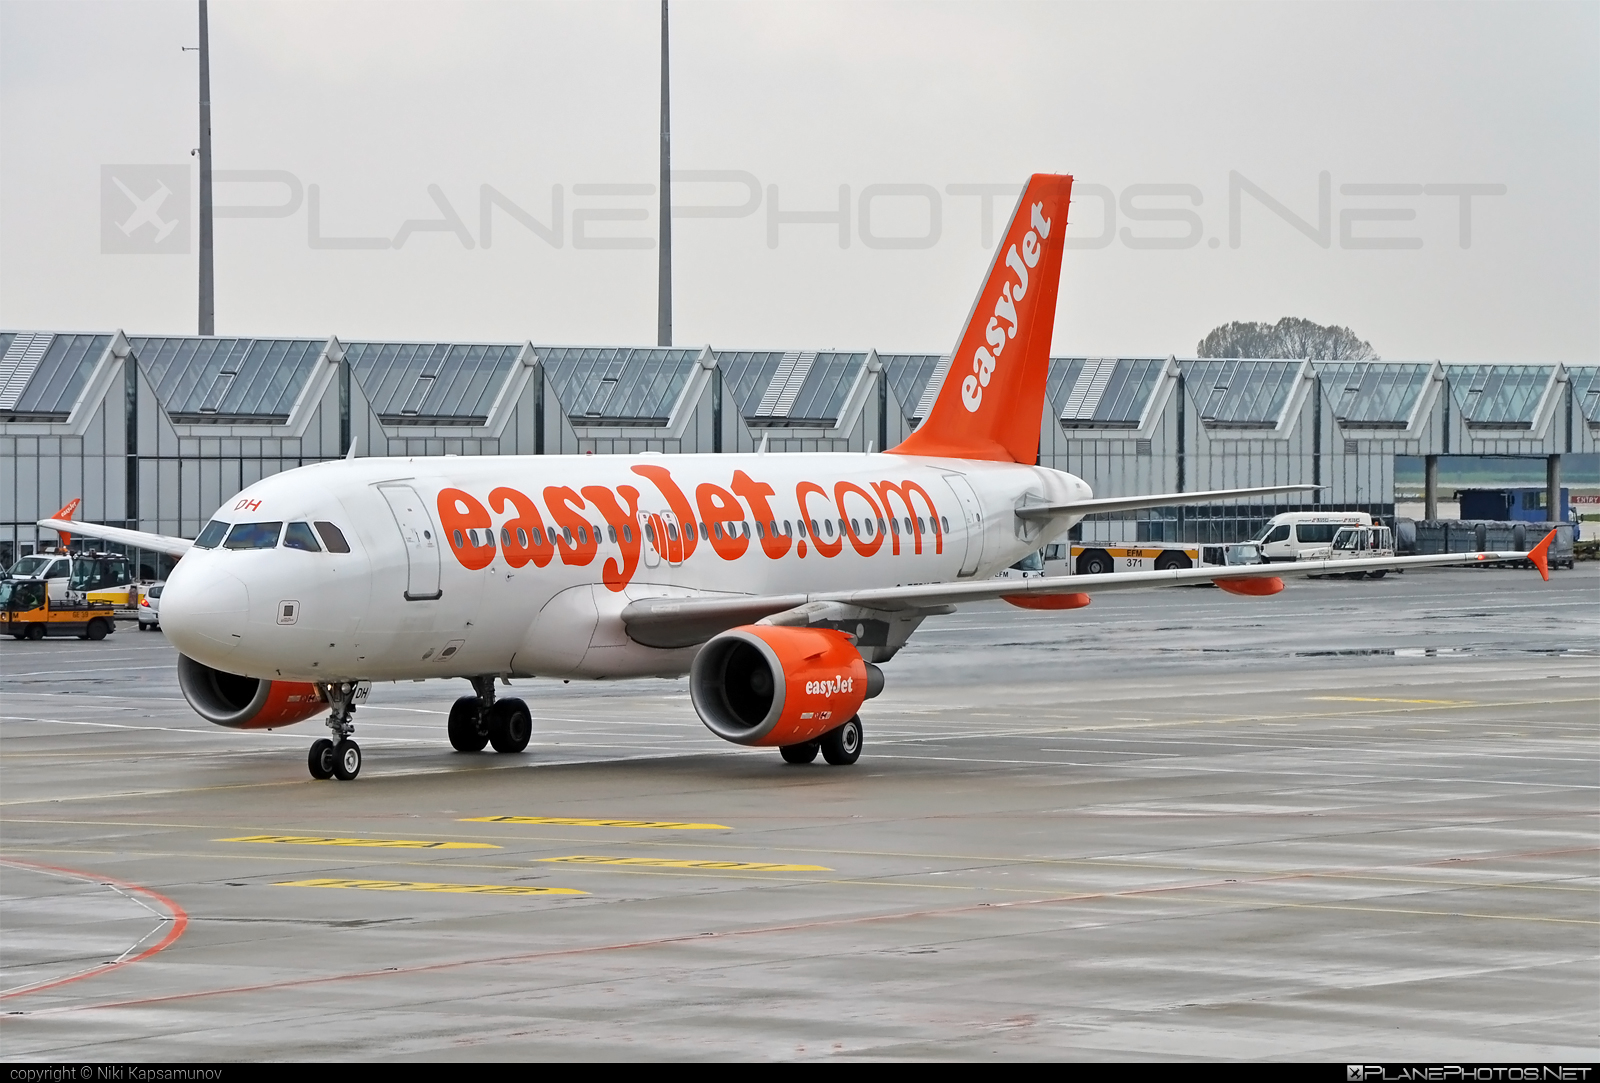 Airbus A319-111 - G-EZDH operated by easyJet #a319 #a320family #airbus #airbus319 #easyjet